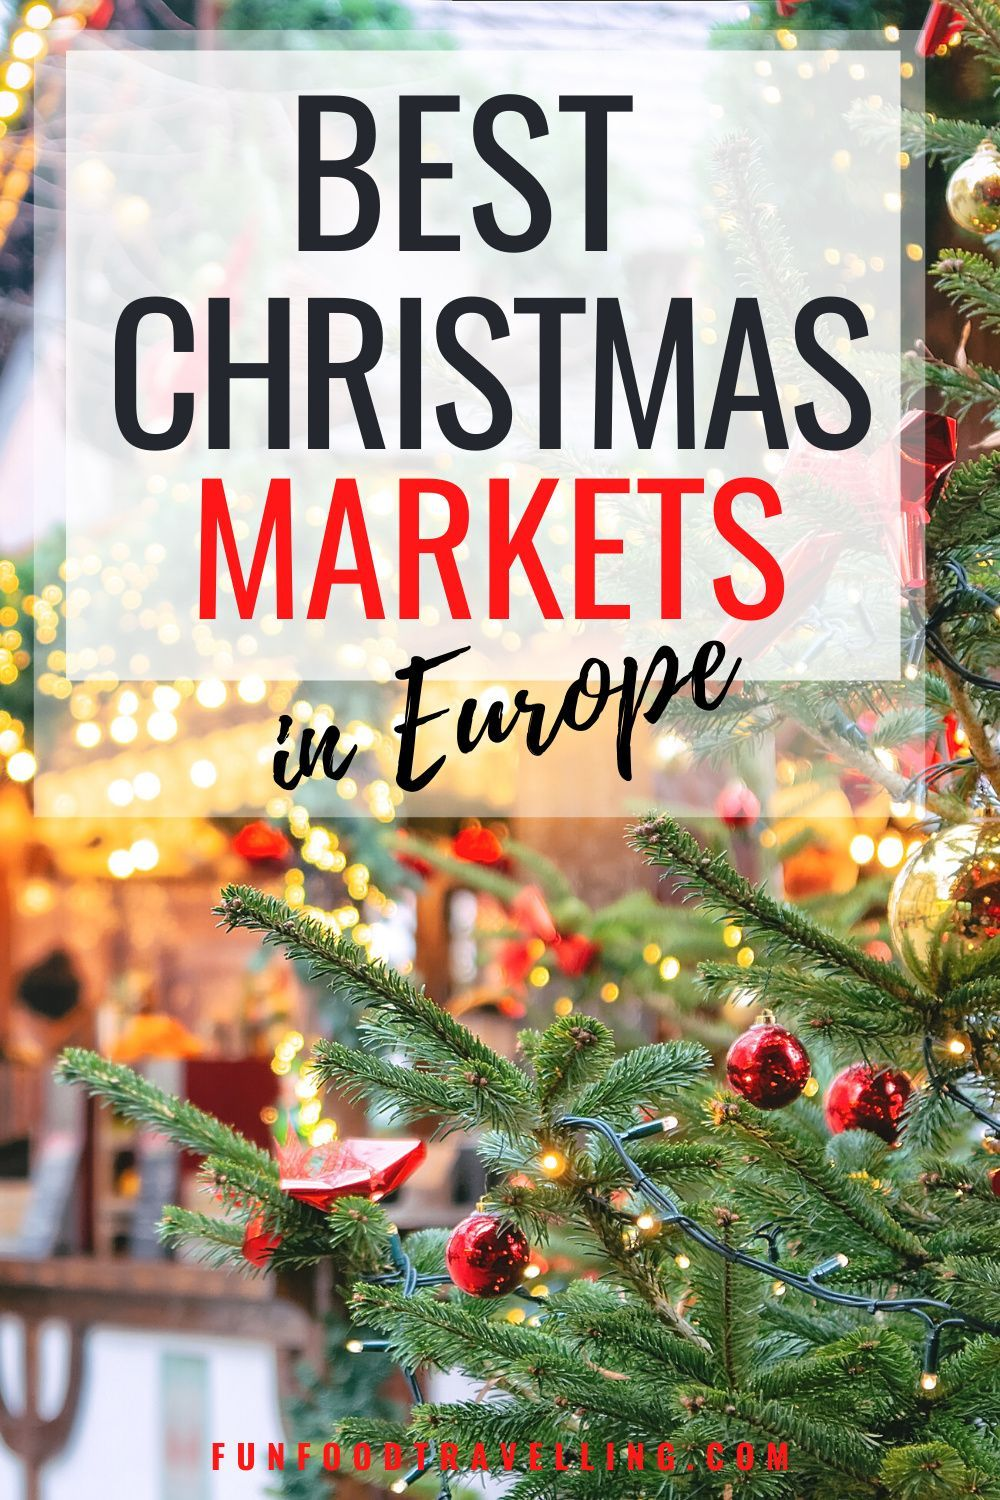 Top 5 Places For The Best Christmas Market Breaks In Europe Fun Food Travelling In 2020 Europe Winter Travel Christmas In Europe Best Christmas Markets